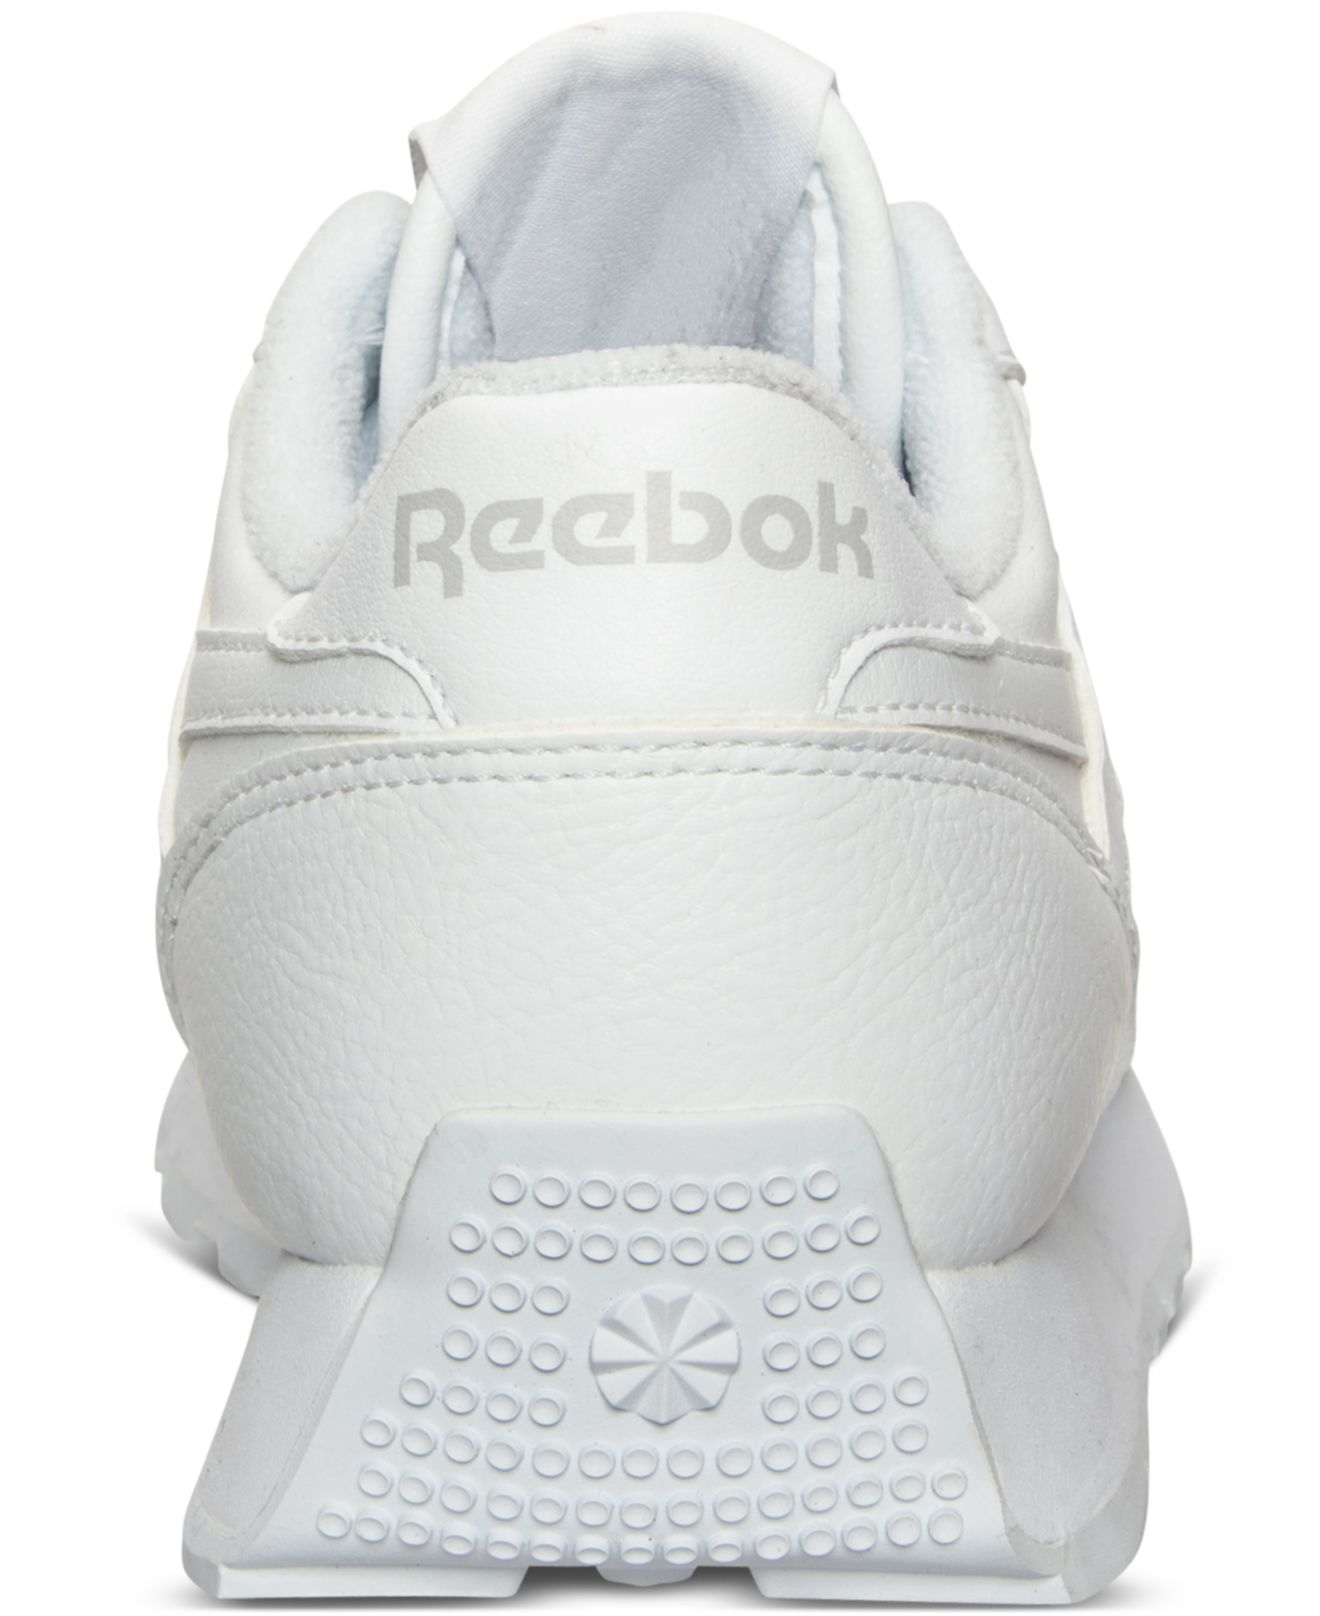 separation shoes 7d8c7 d4a34 Reebok Women s Classic Renaissance Casual Sneakers From Finish Line ...